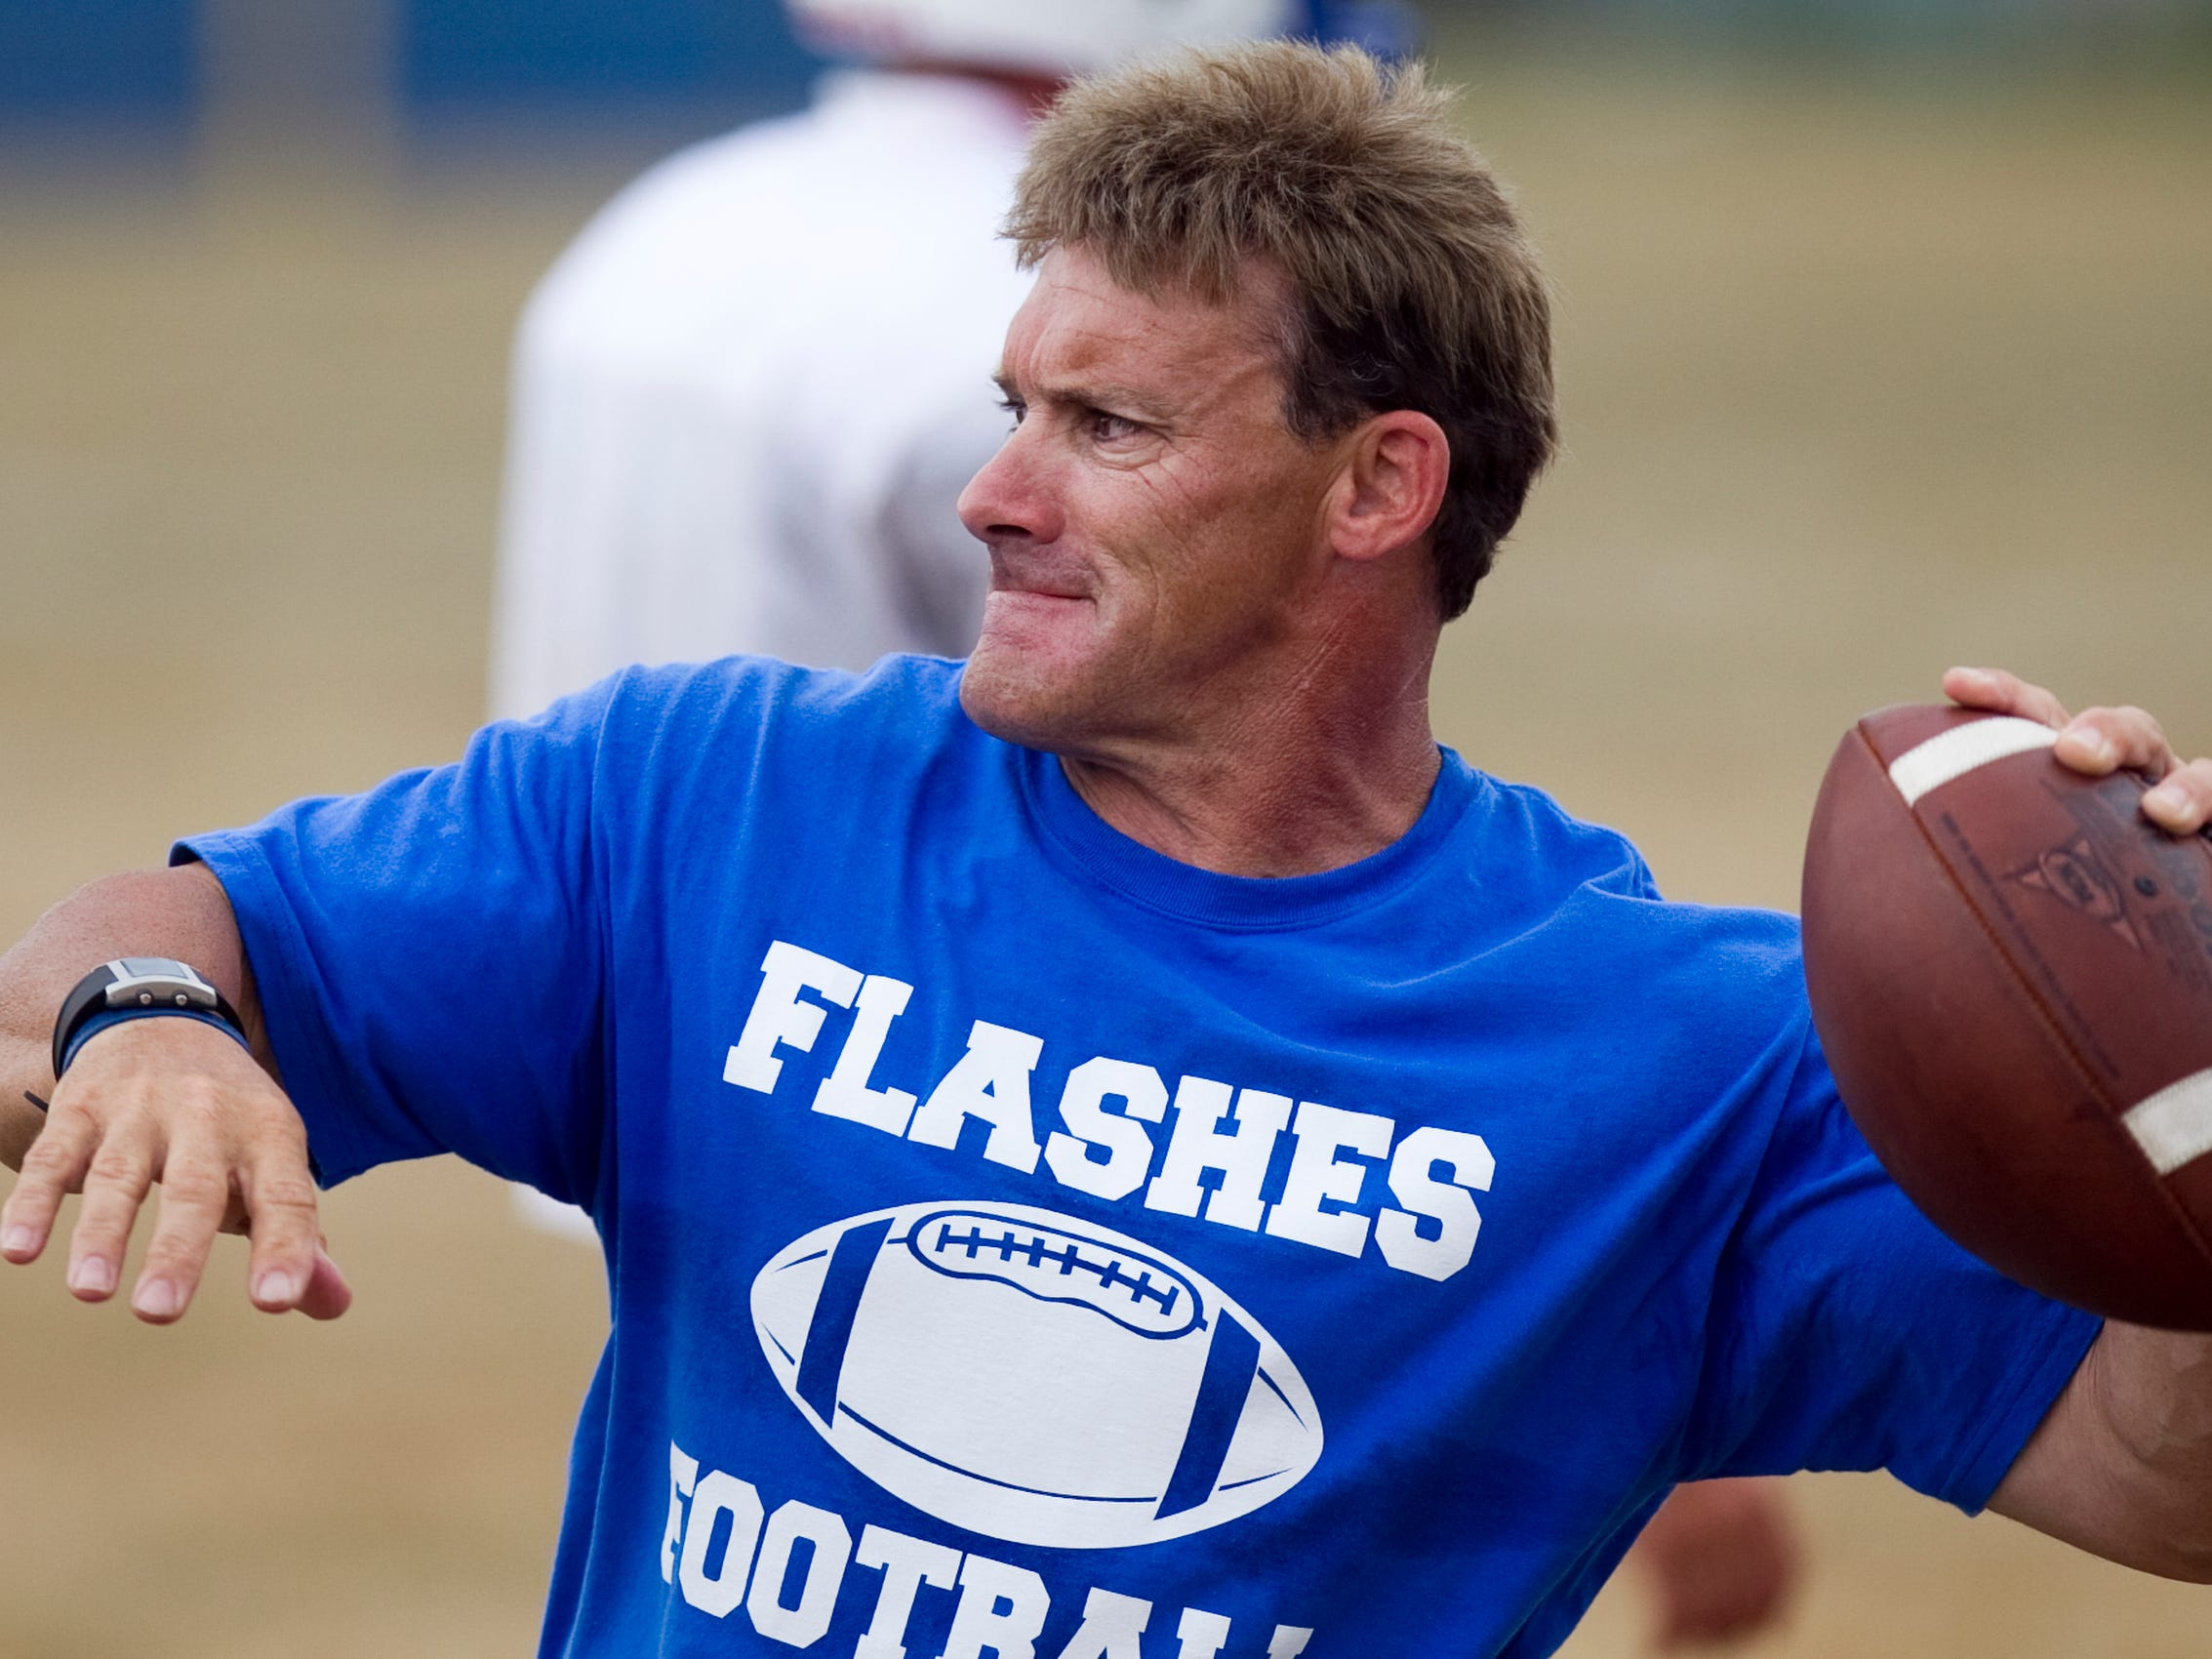 Burt Austin throws a ball to players at afternoon football practice at Franklin Central High School, Indianapolis, IN, Friday, August 5, 2011. Robert Scheer/The Star <b>08/18/2011 - S01 - SOUTHINDY - 1ST - THE INDIANAPOLIS STAR</b><br />